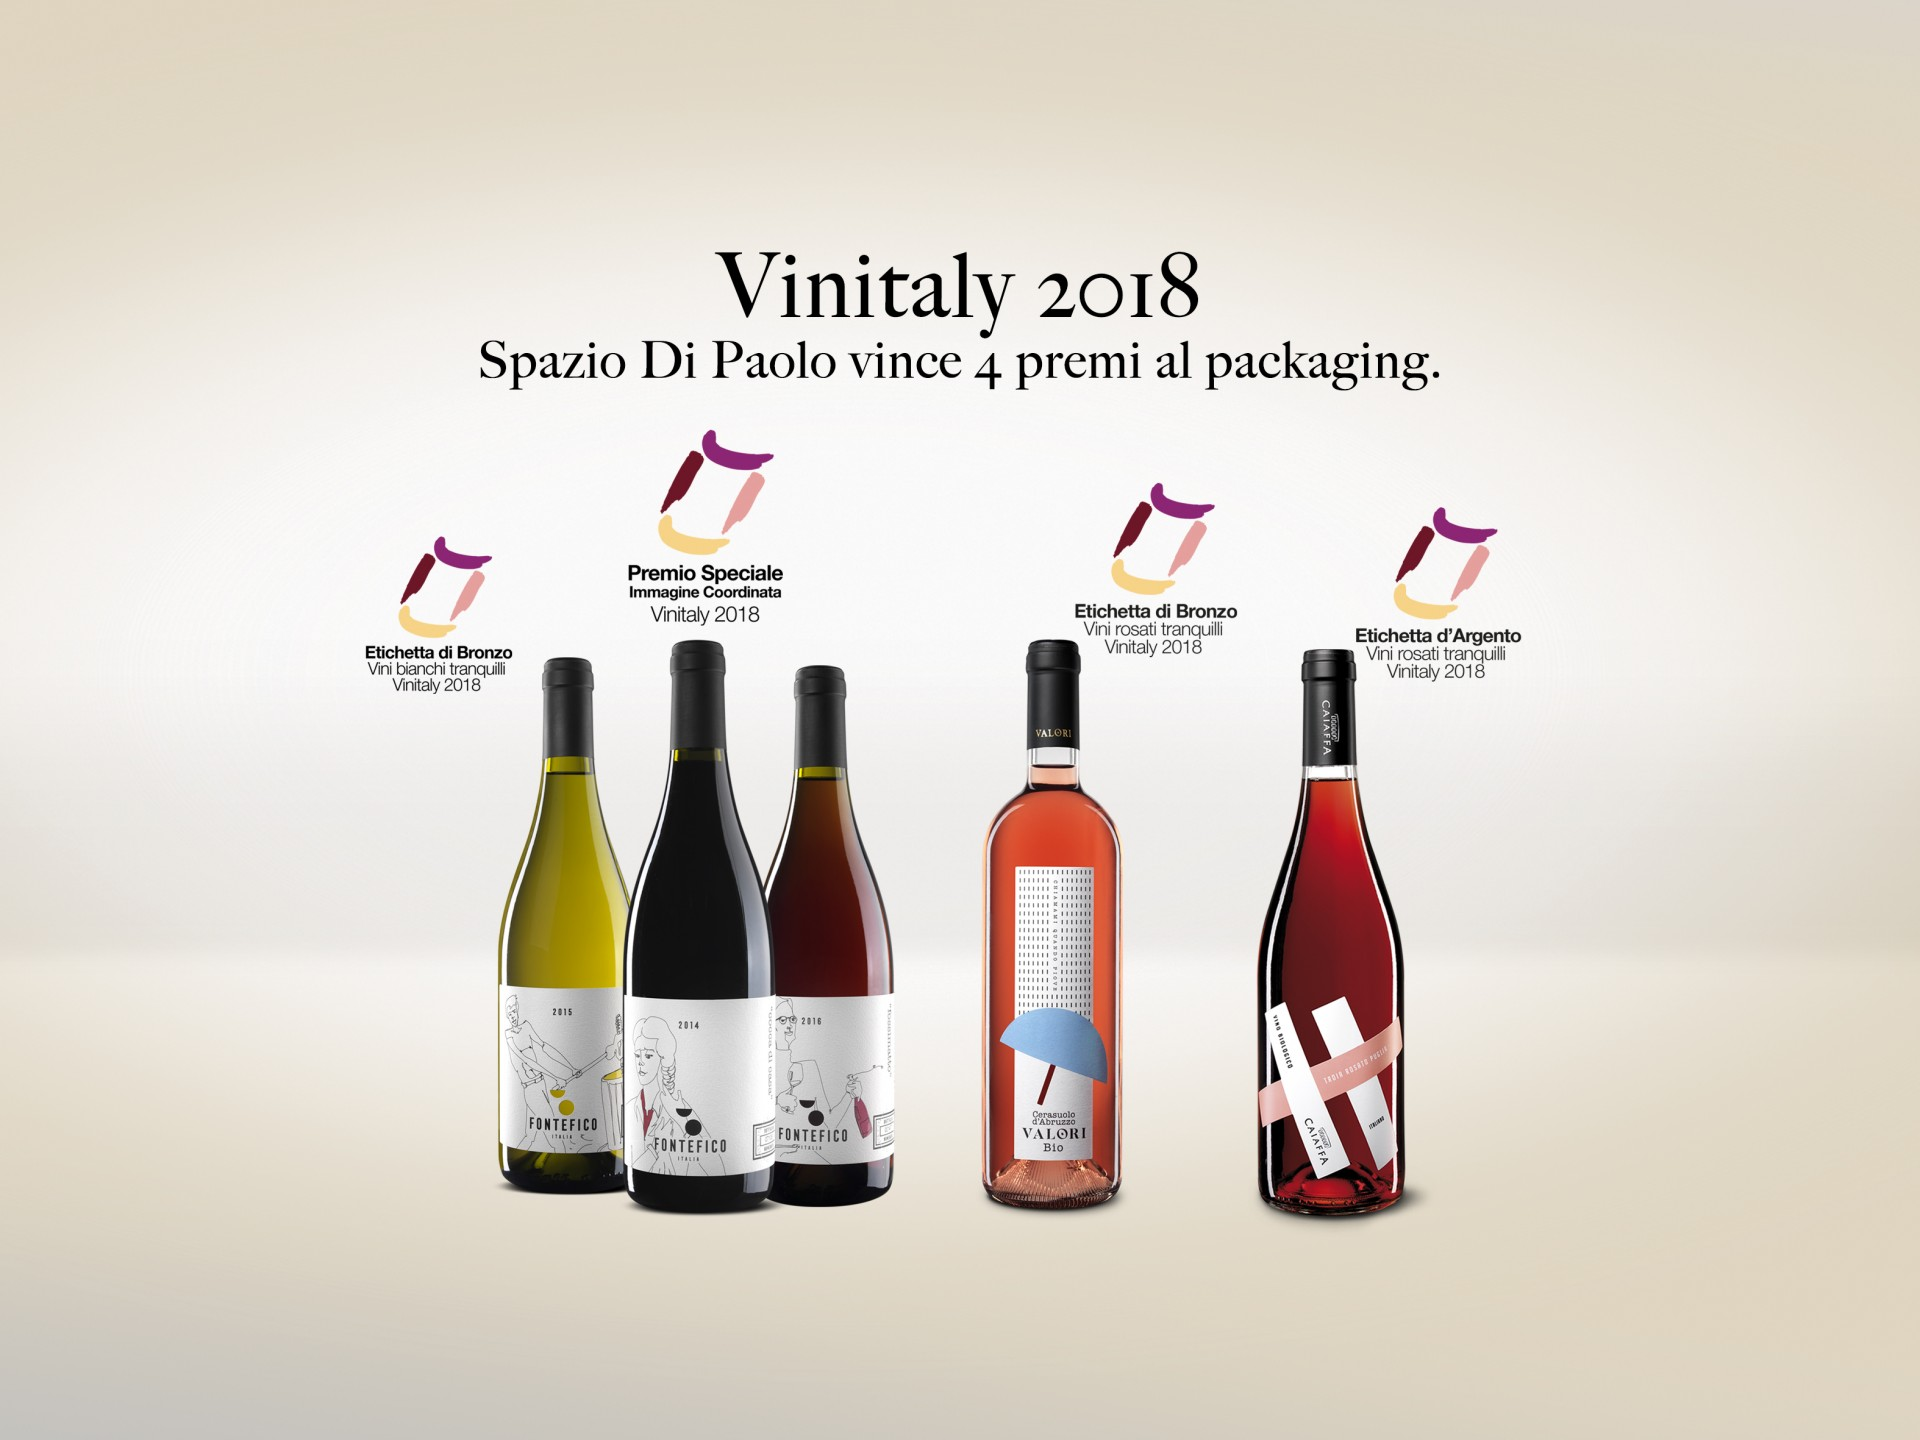 VINITALY-2018-AWARDS-SPAZIO-DI-PAOLO-PACKAGING